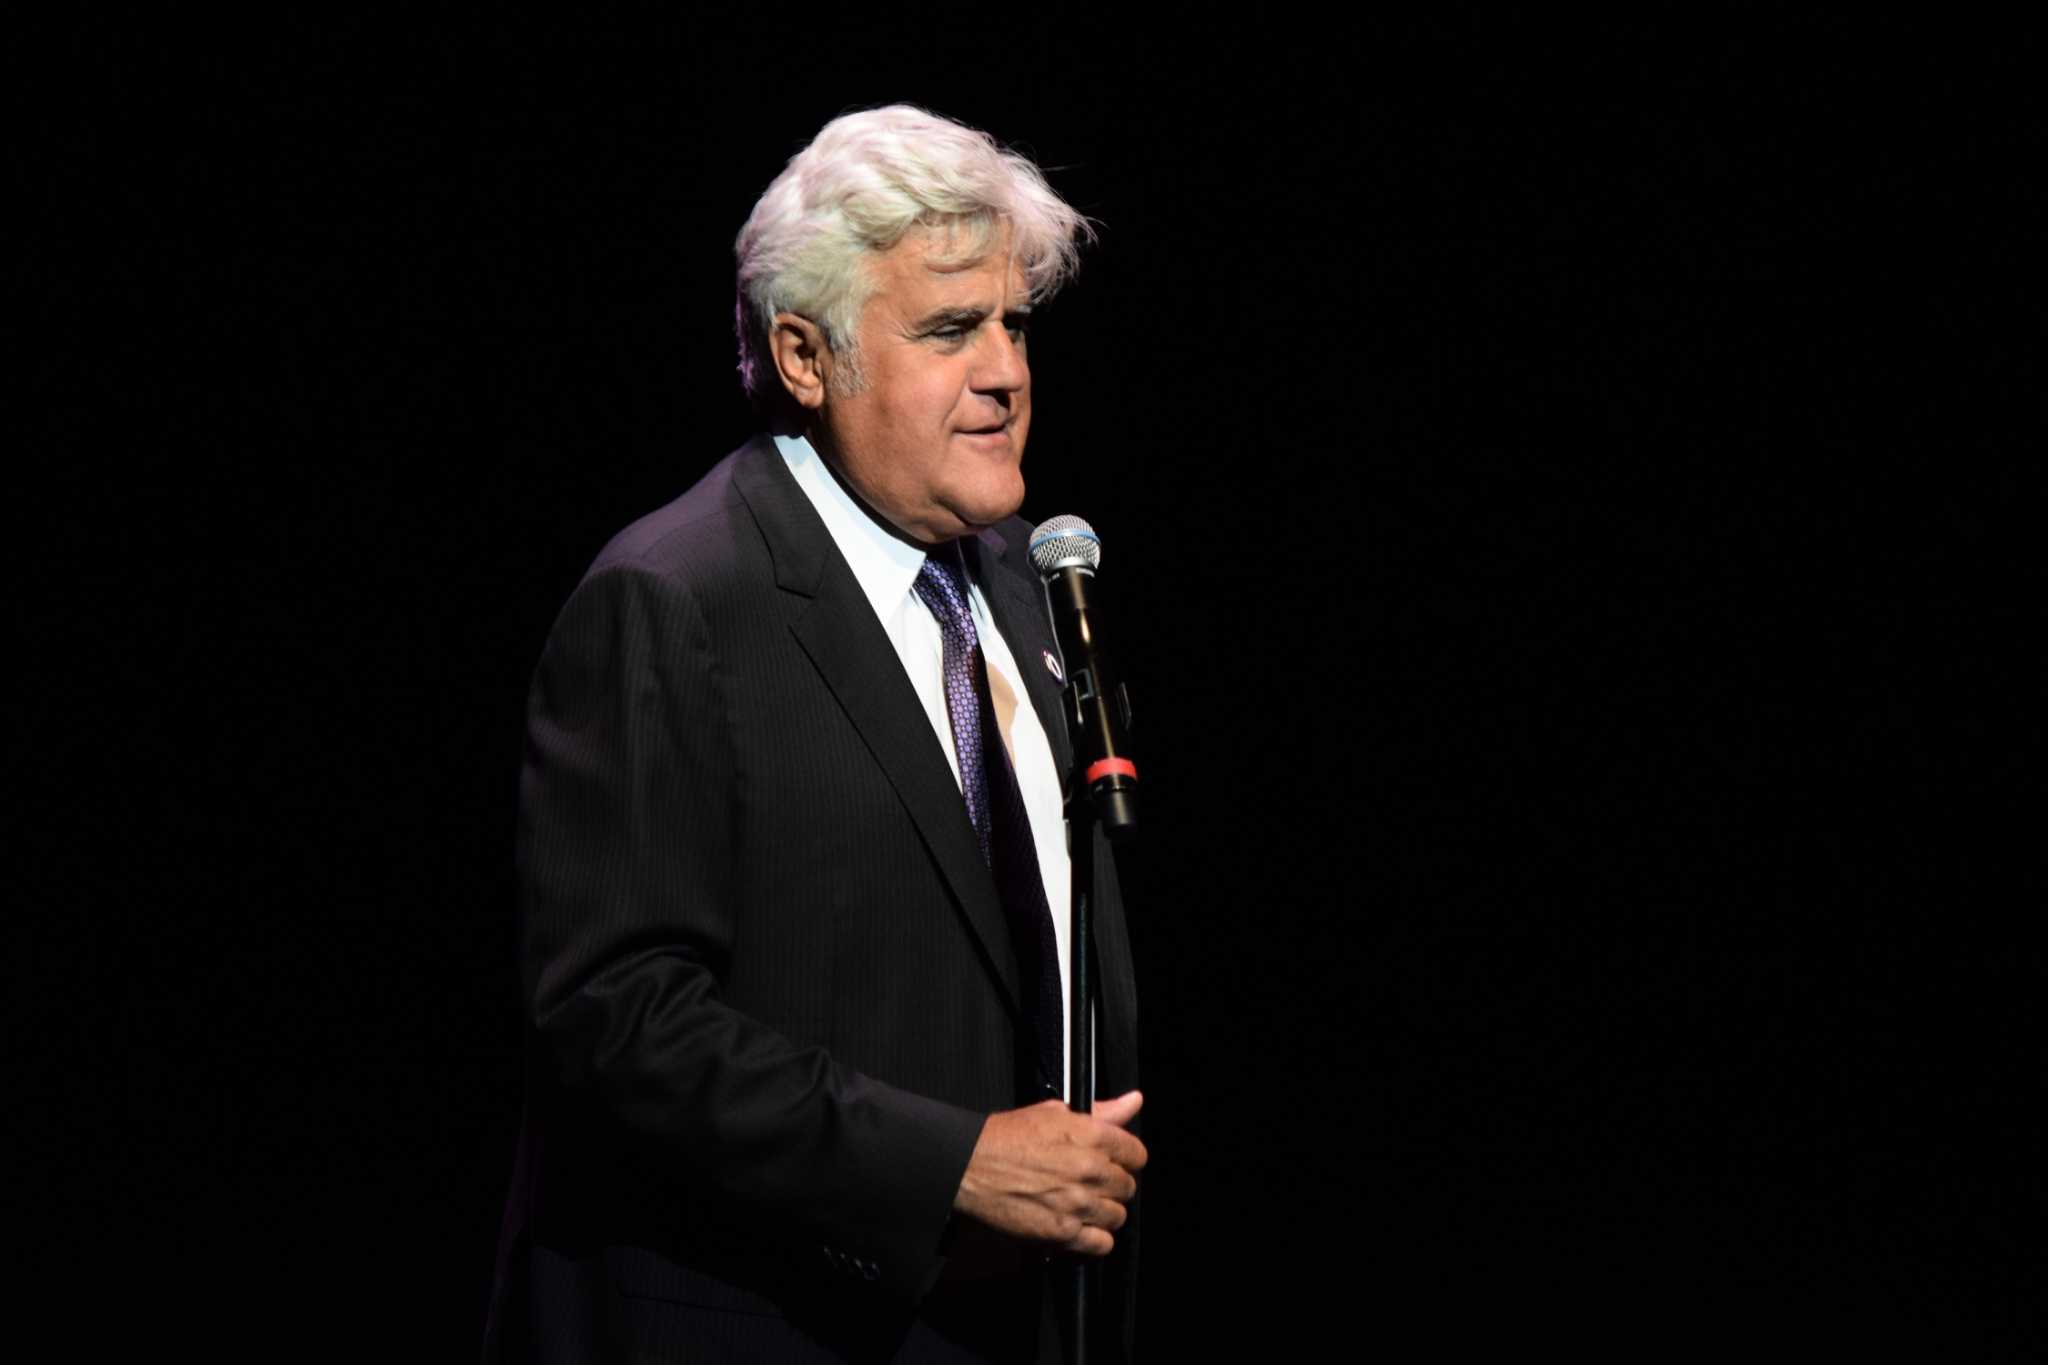 Jay Leno brings his comedy to Foxwoods Resort Casino - CT Insider